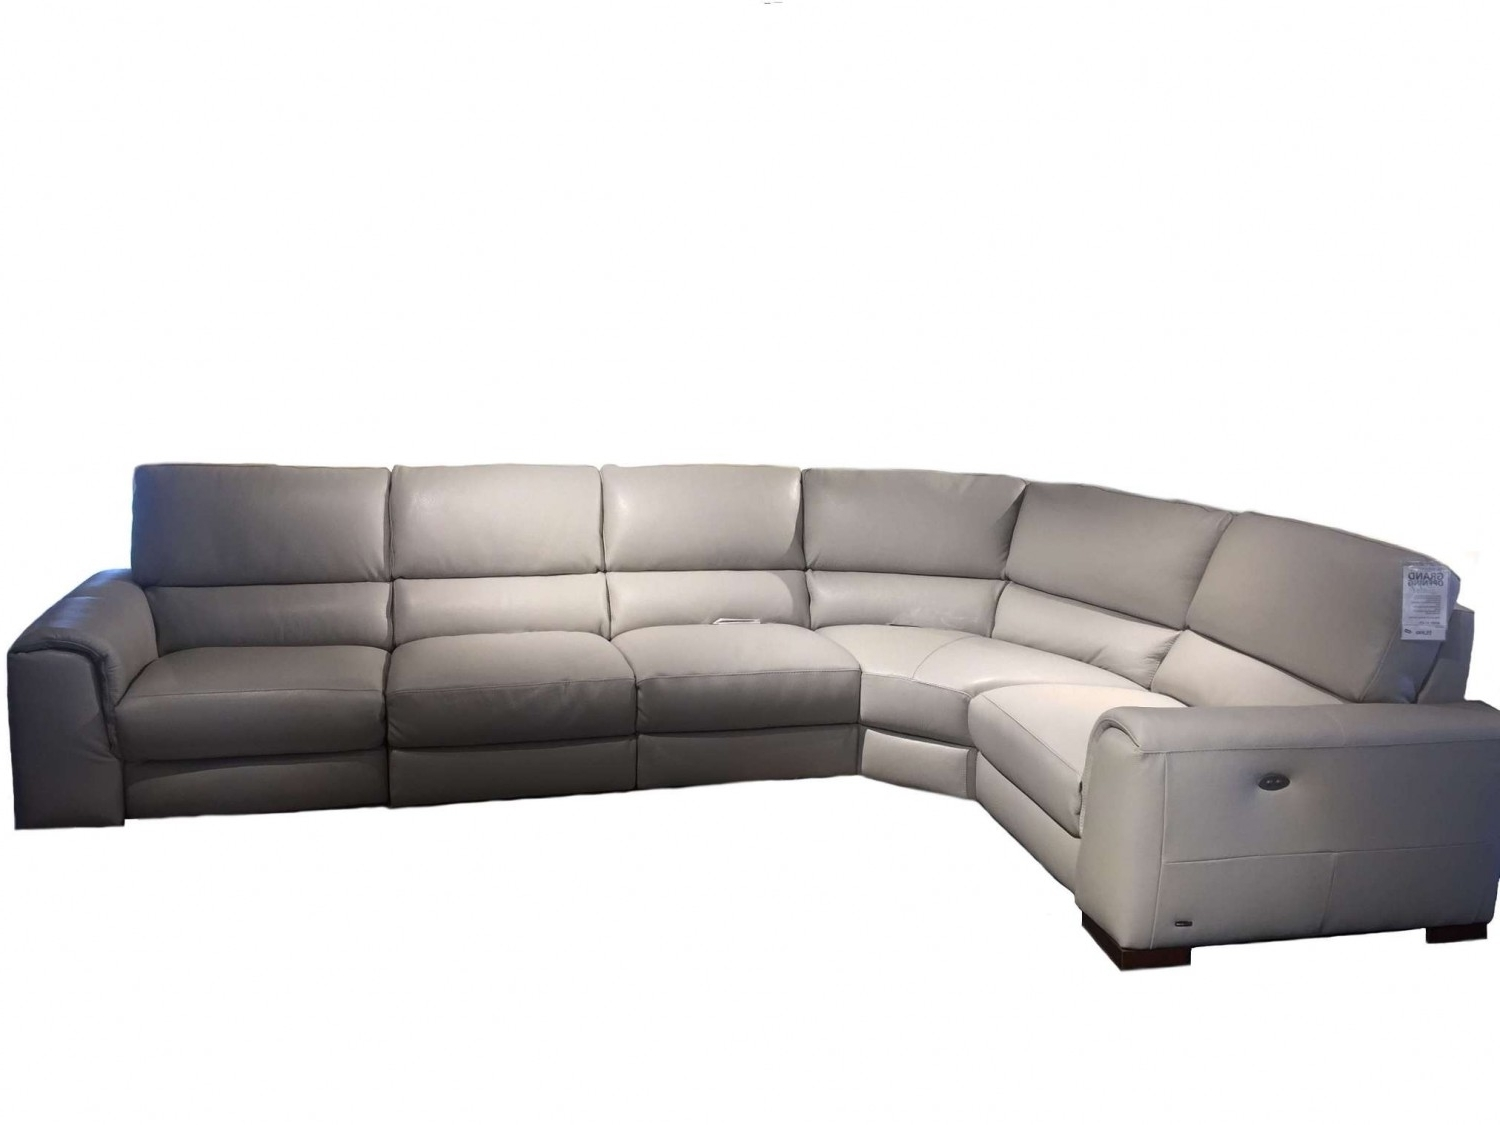 Buy Contemporary In Favorite Natuzzi Sectional Sofas (View 1 of 15)